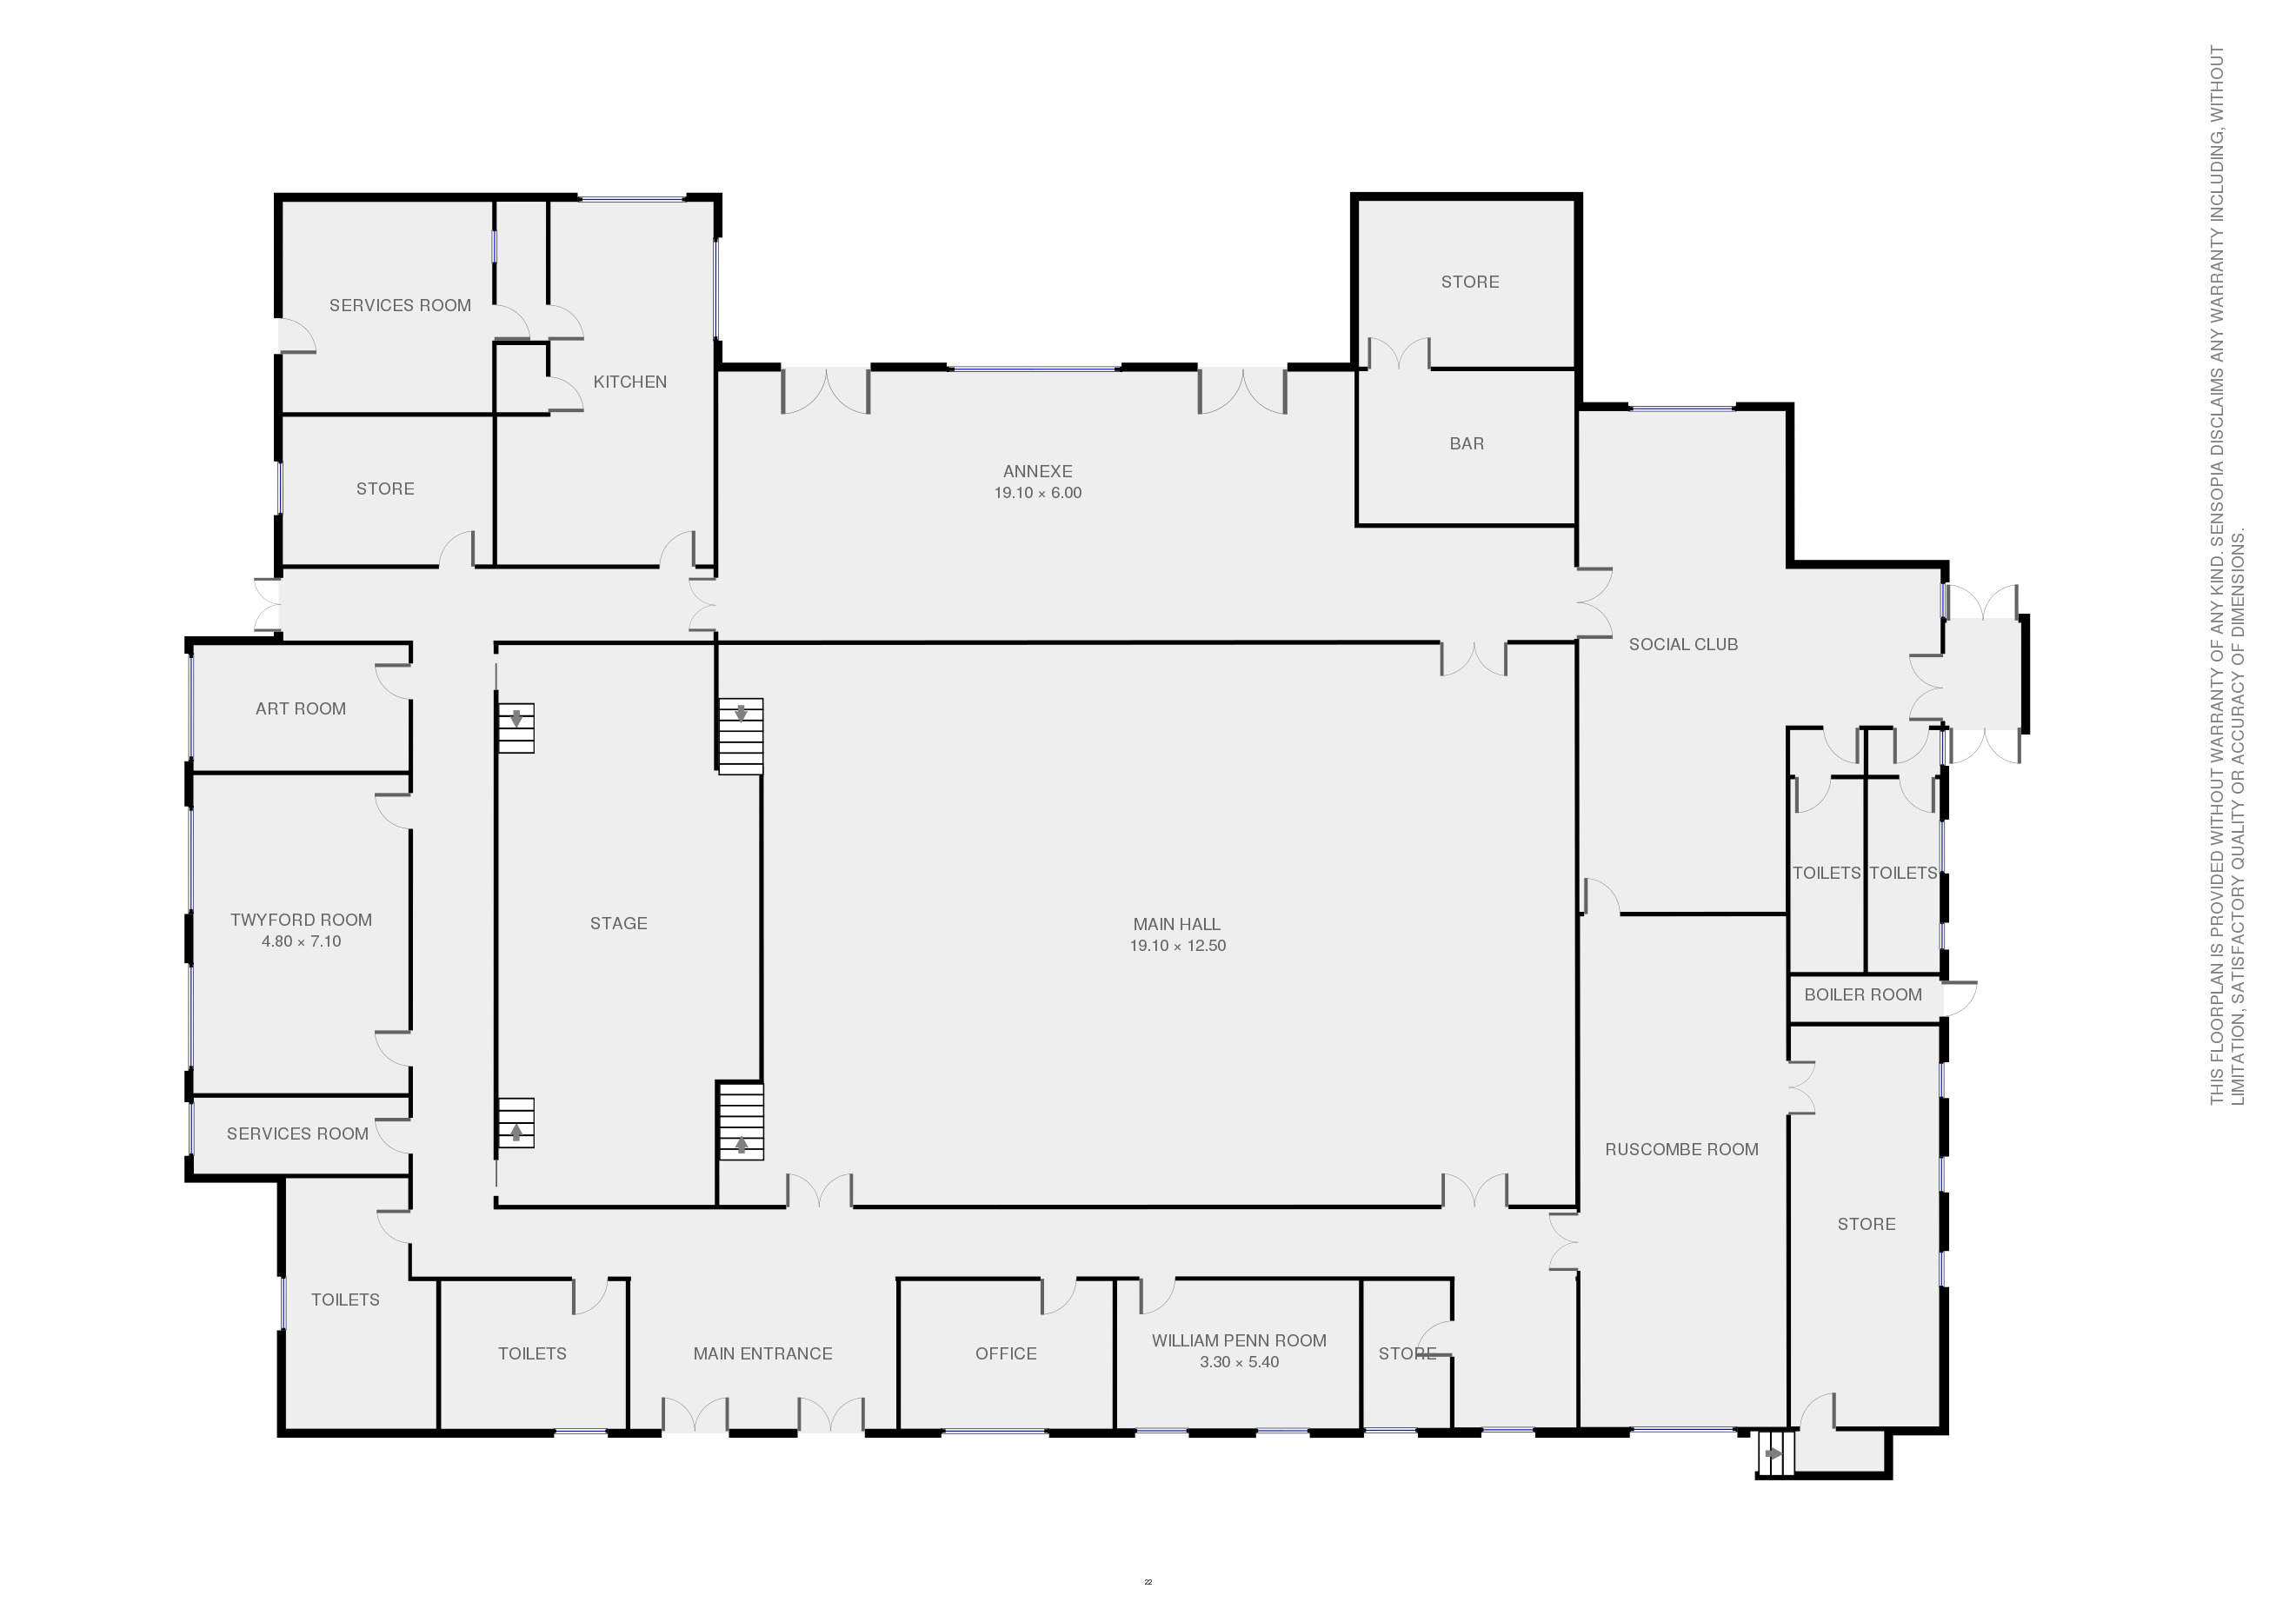 Loddon Hall Floor Plan